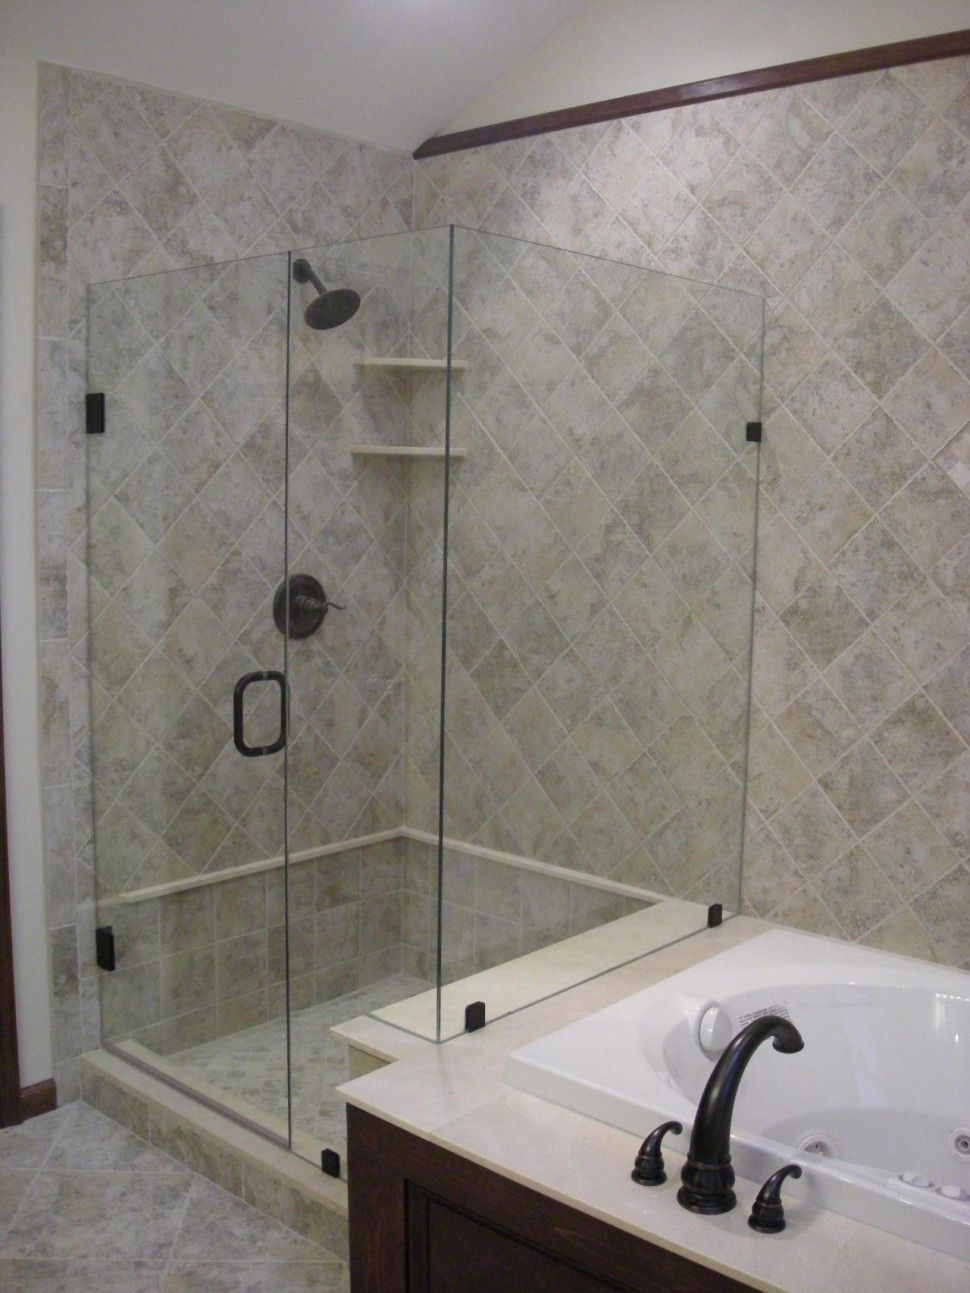 gallery small bathroom ideas with shower stall backyard fire pit gym on large bathroom shower ideas, bathroom shower organization ideas, bathroom remodeling, plumbing design ideas, bathroom black and white ideas, bathroom bath ideas, bathrooms interior design ideas, master bathroom shower ideas, walk-in shower ideas, bathtub design ideas, florida bathroom design ideas, all tiled small bathroom ideas, small bathroom design ideas, home sauna design ideas, bathroom mirror design ideas, bathroom backsplash design ideas, bathroom vanity cabinet sizes, bathroom shower niche ideas, very very small bathroom ideas, master bathroom design ideas,